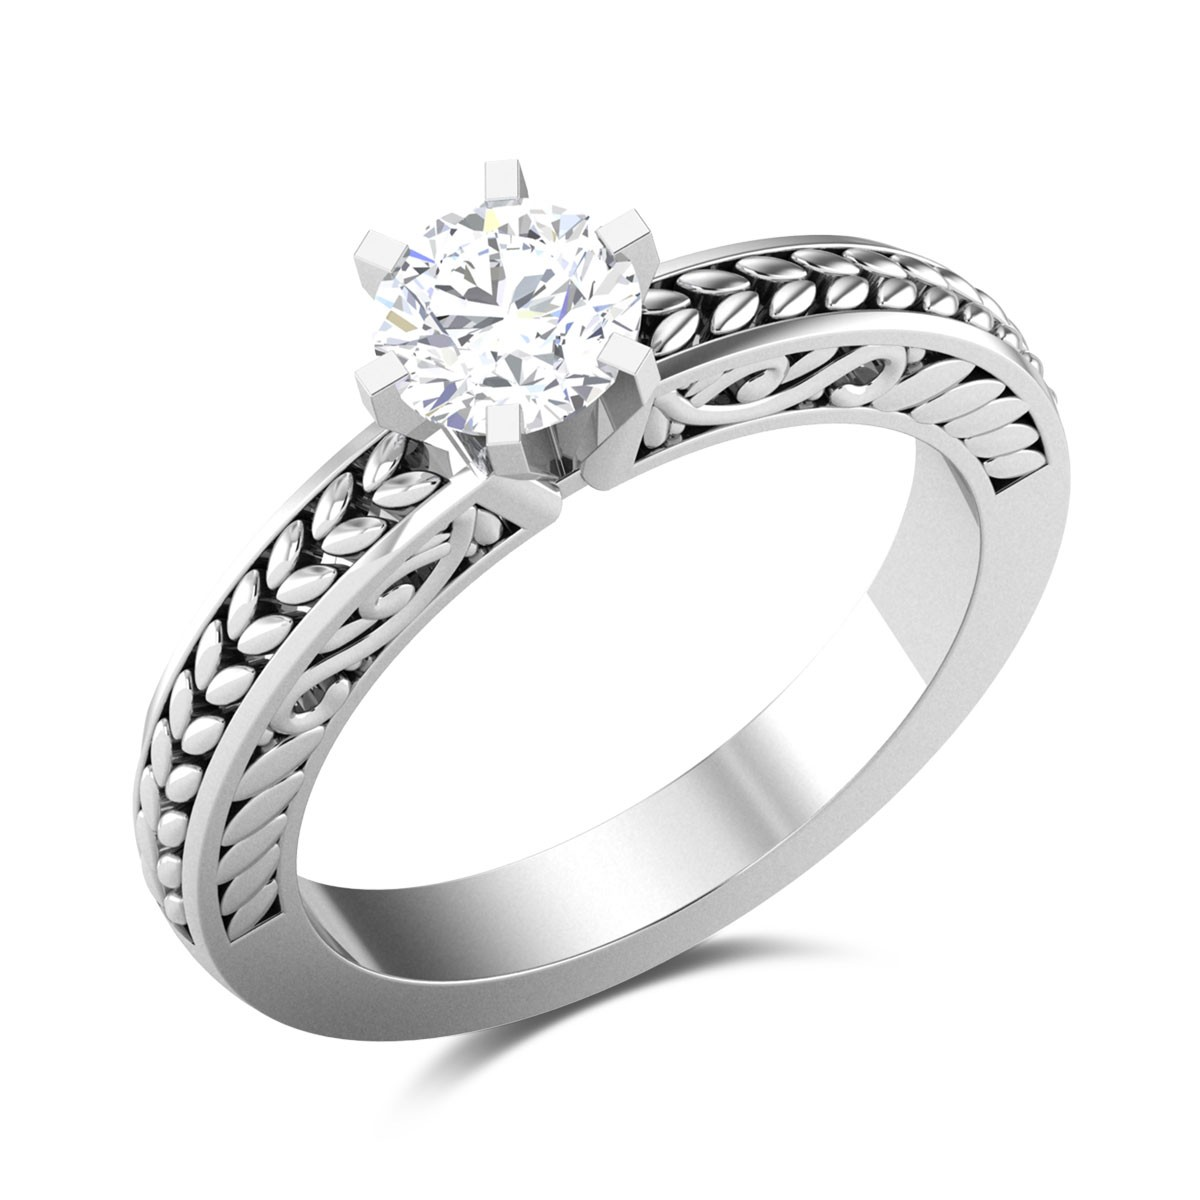 Champak 6 Prong Solitaire Ring